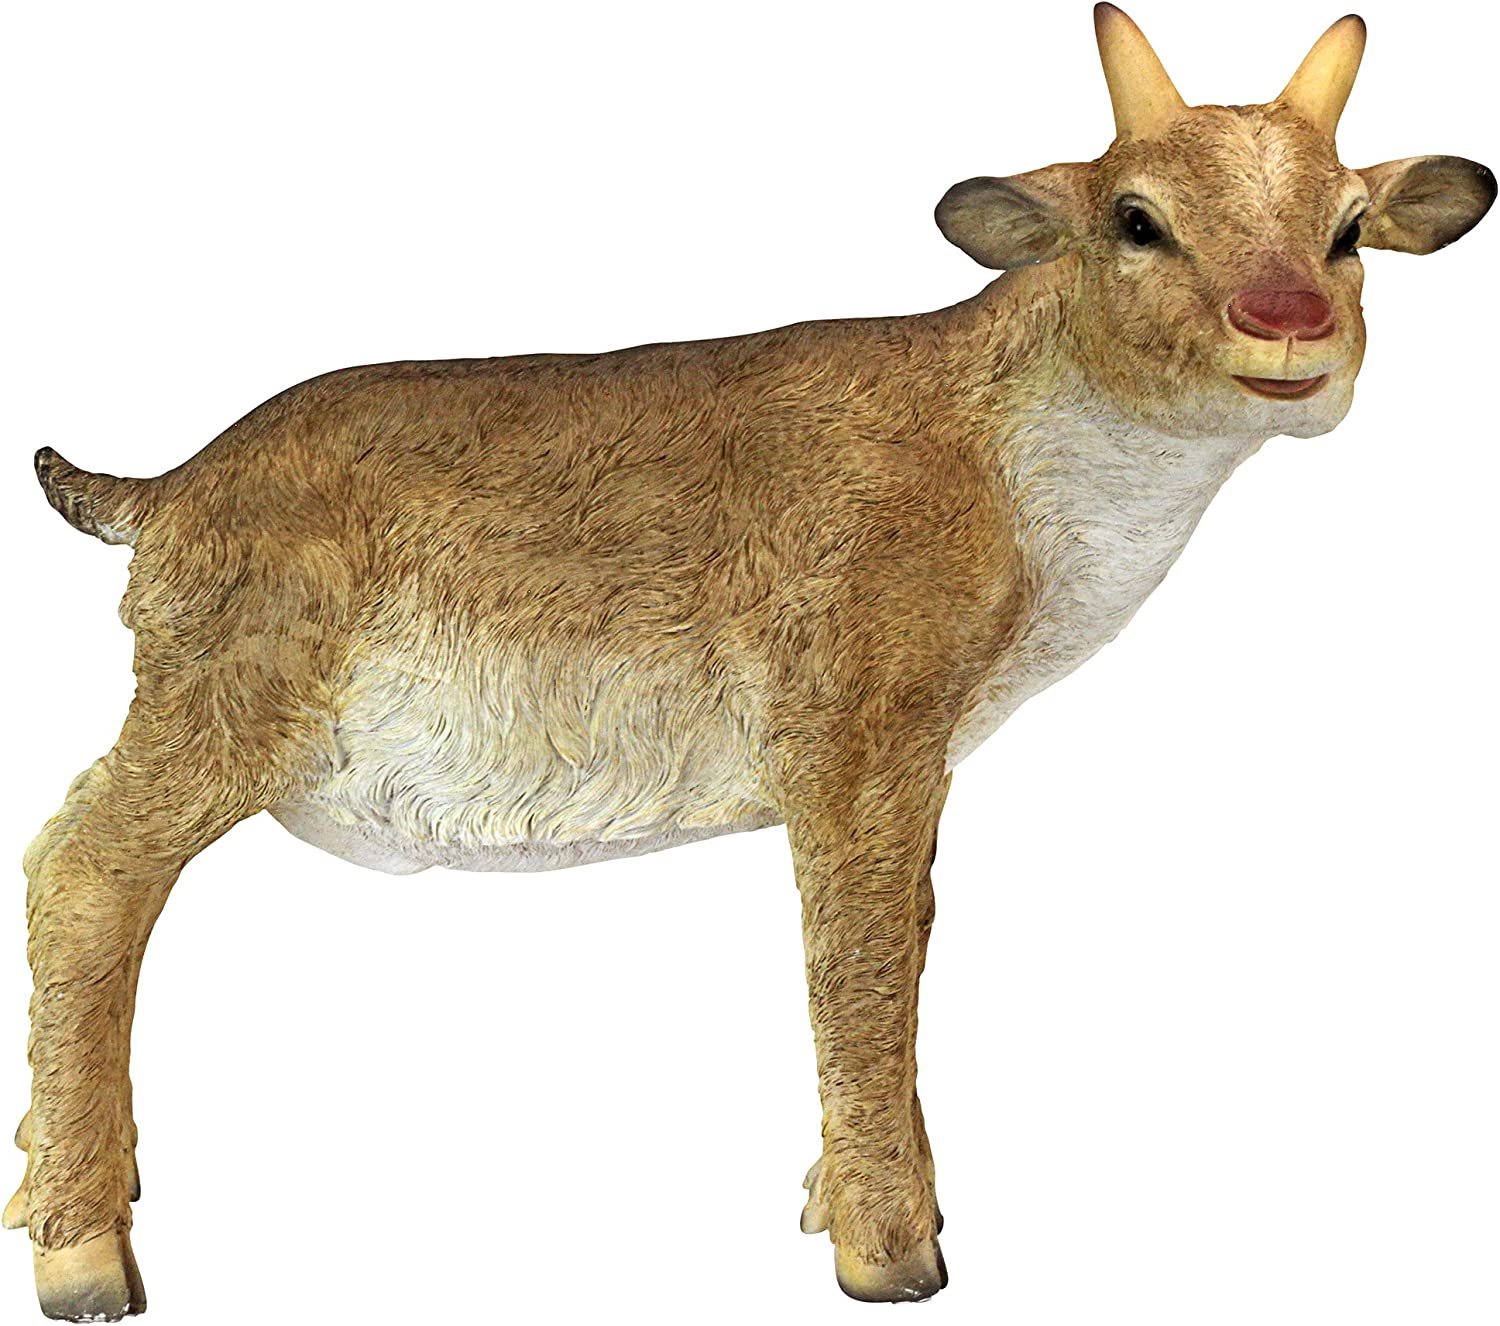 Design Toscano QM21055 Trouble The Billy Goat Farm Animal Statue, One Size, Full Color